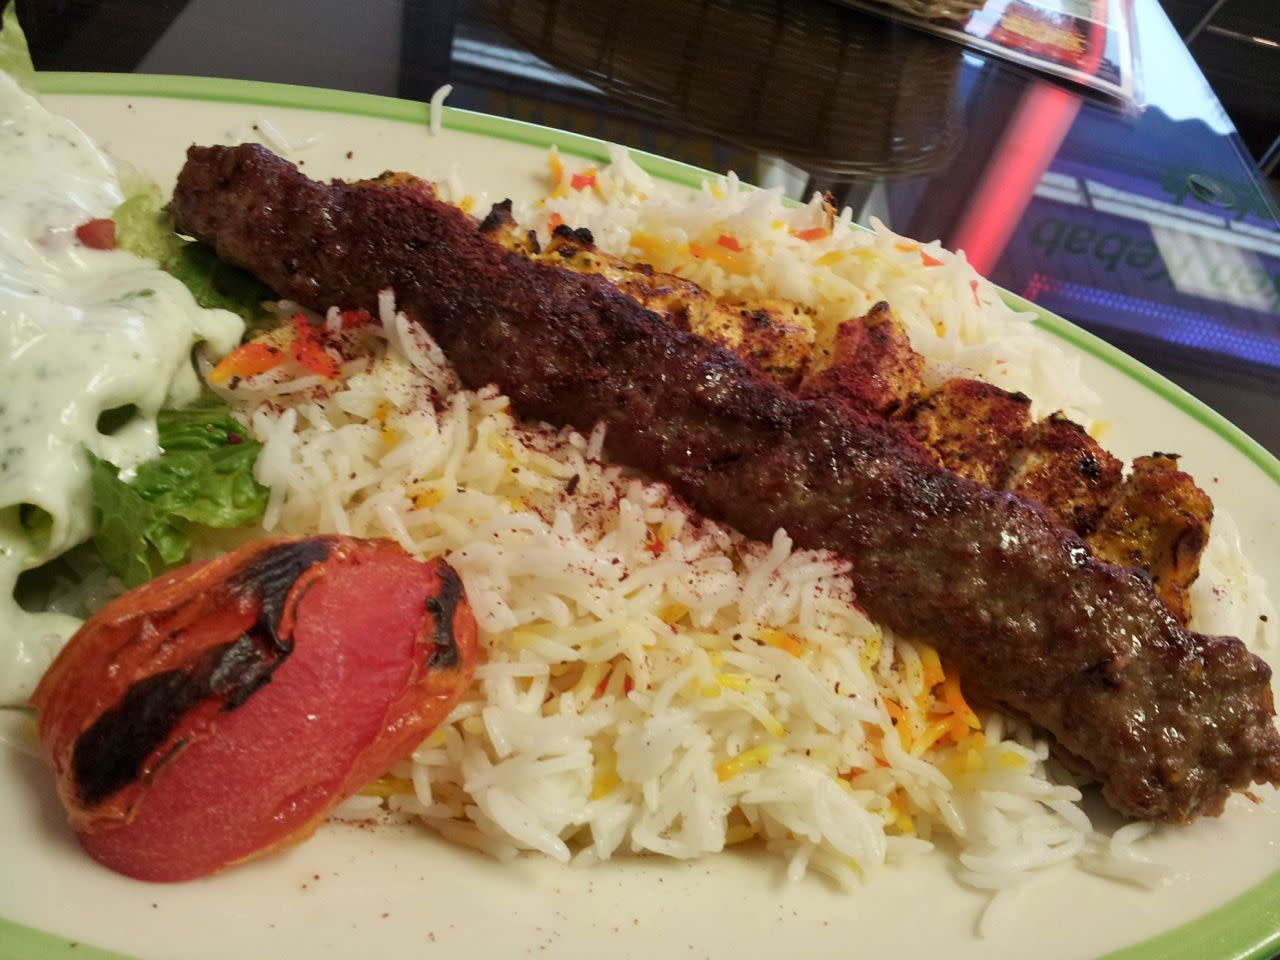 Daddy's Delight kebab